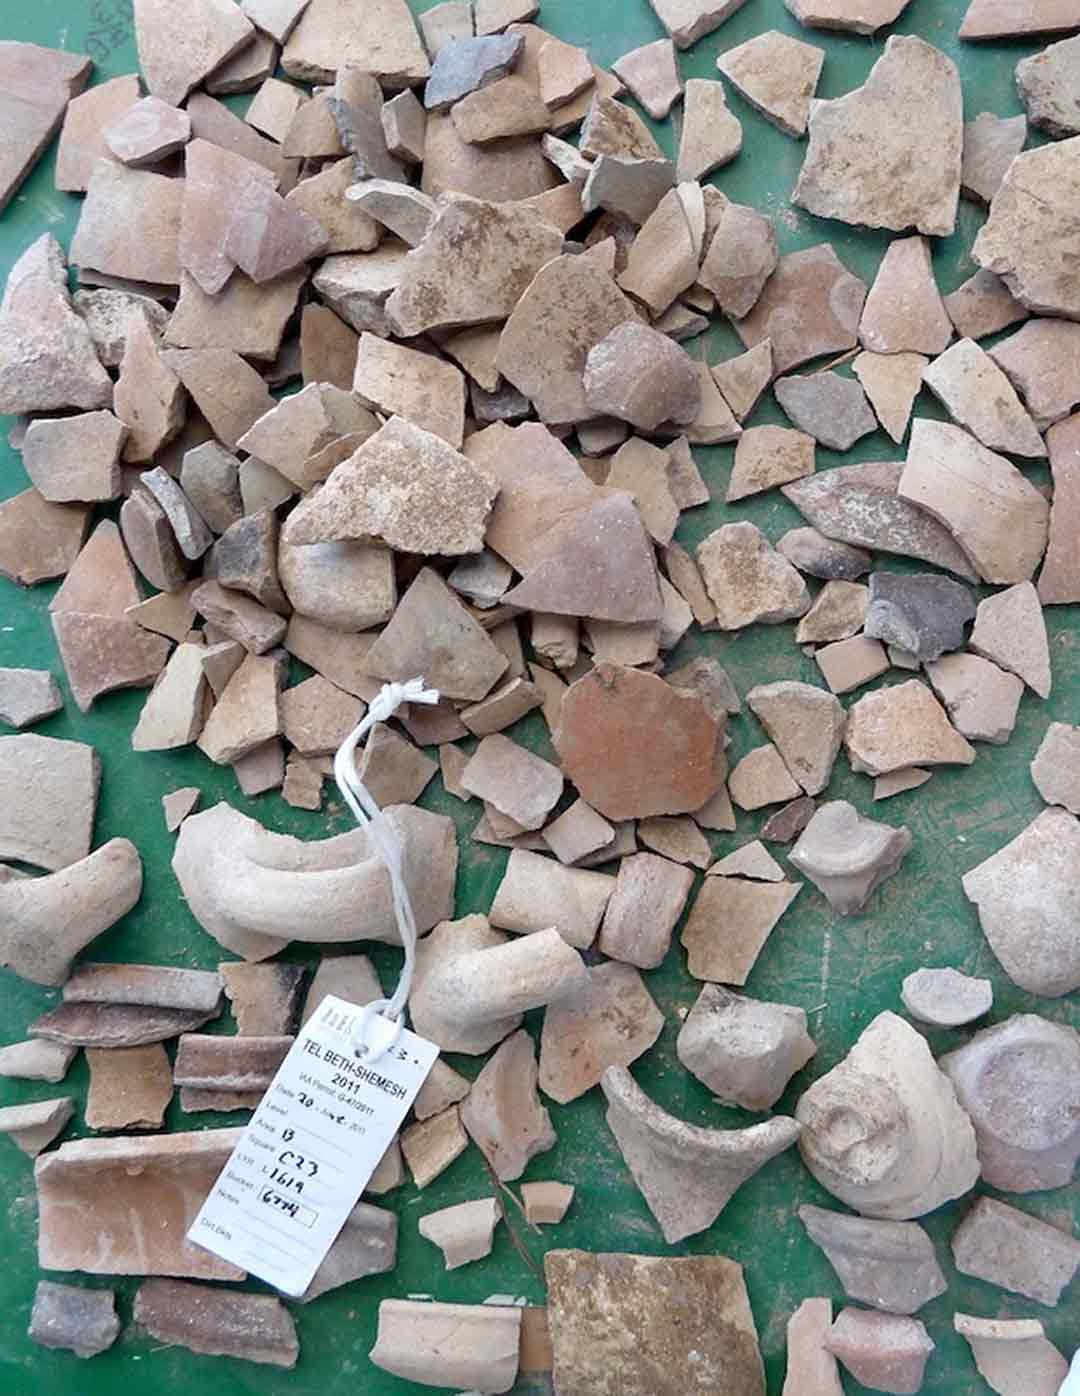 Collection of ancient pottery pieces